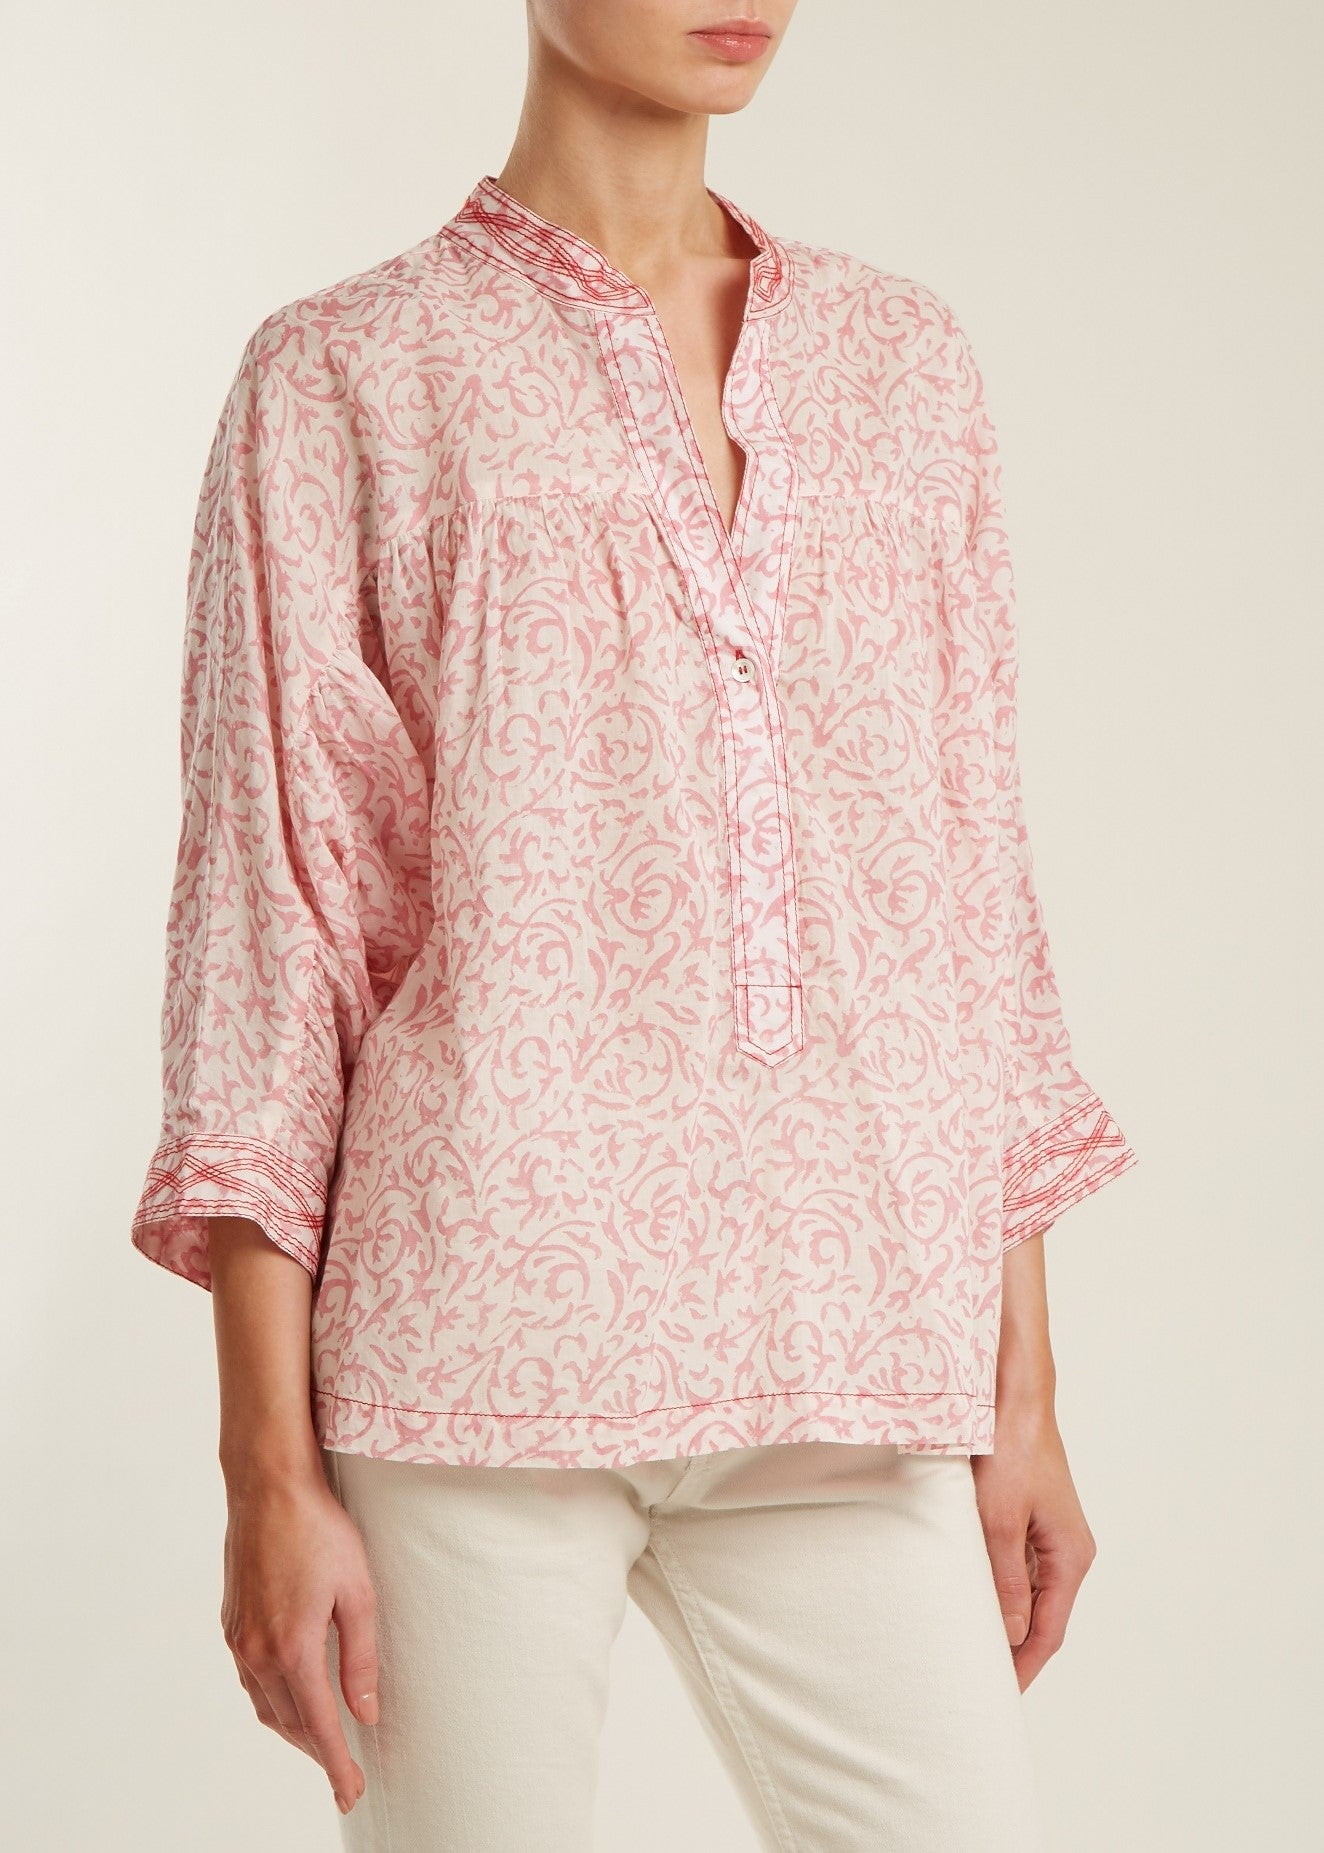 Masscob Mao collared v-neck blouse in rose print